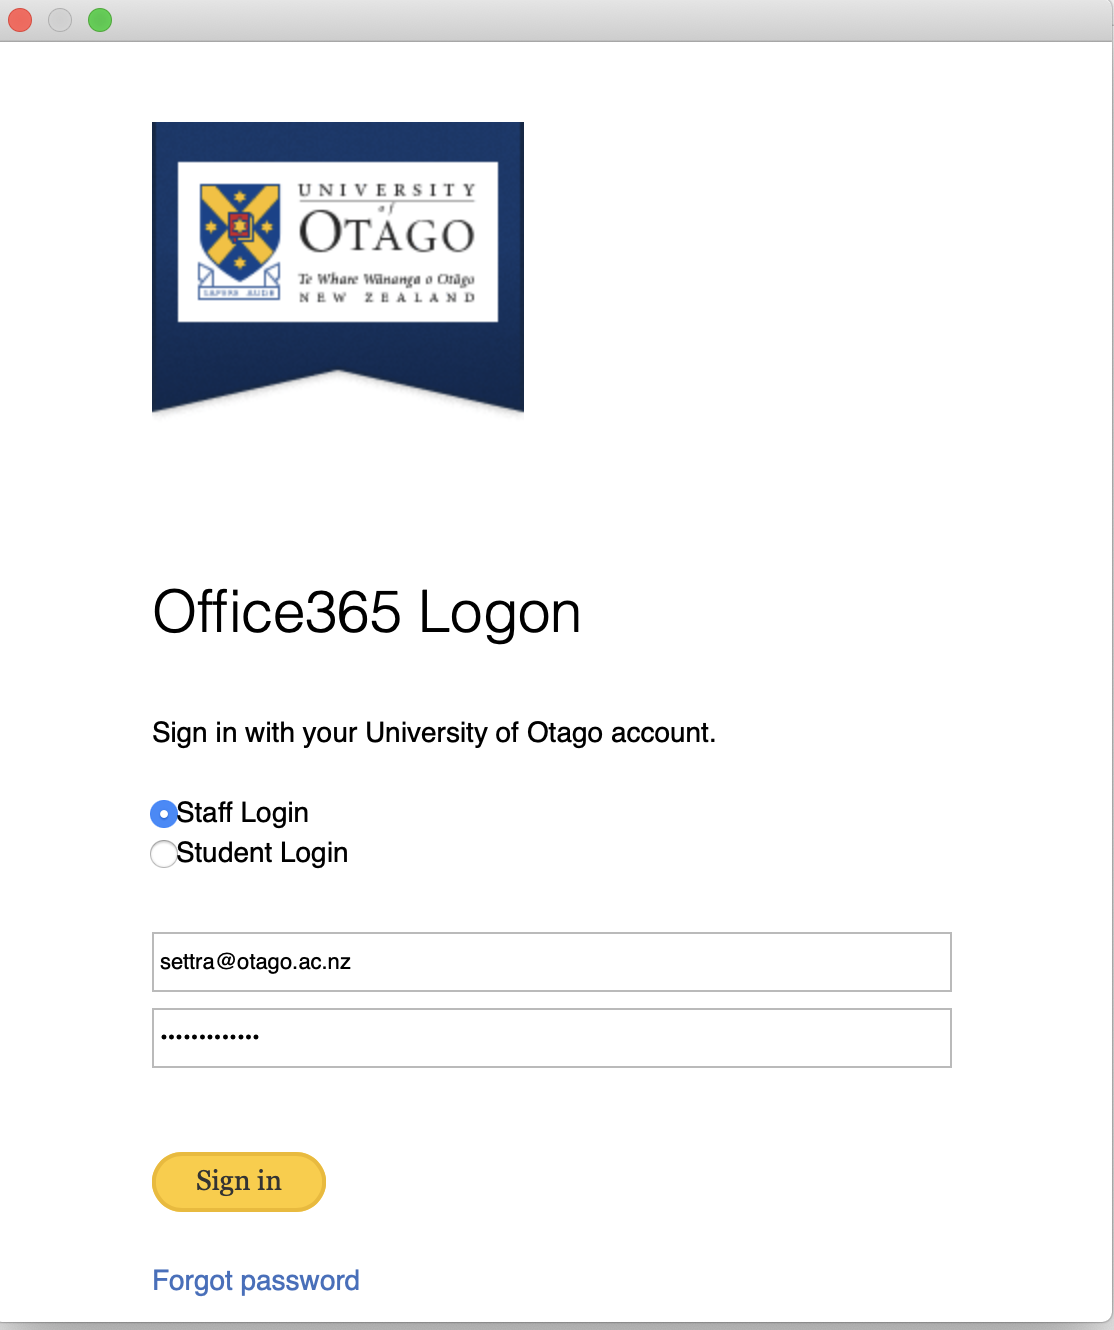 Office365 Logon screen